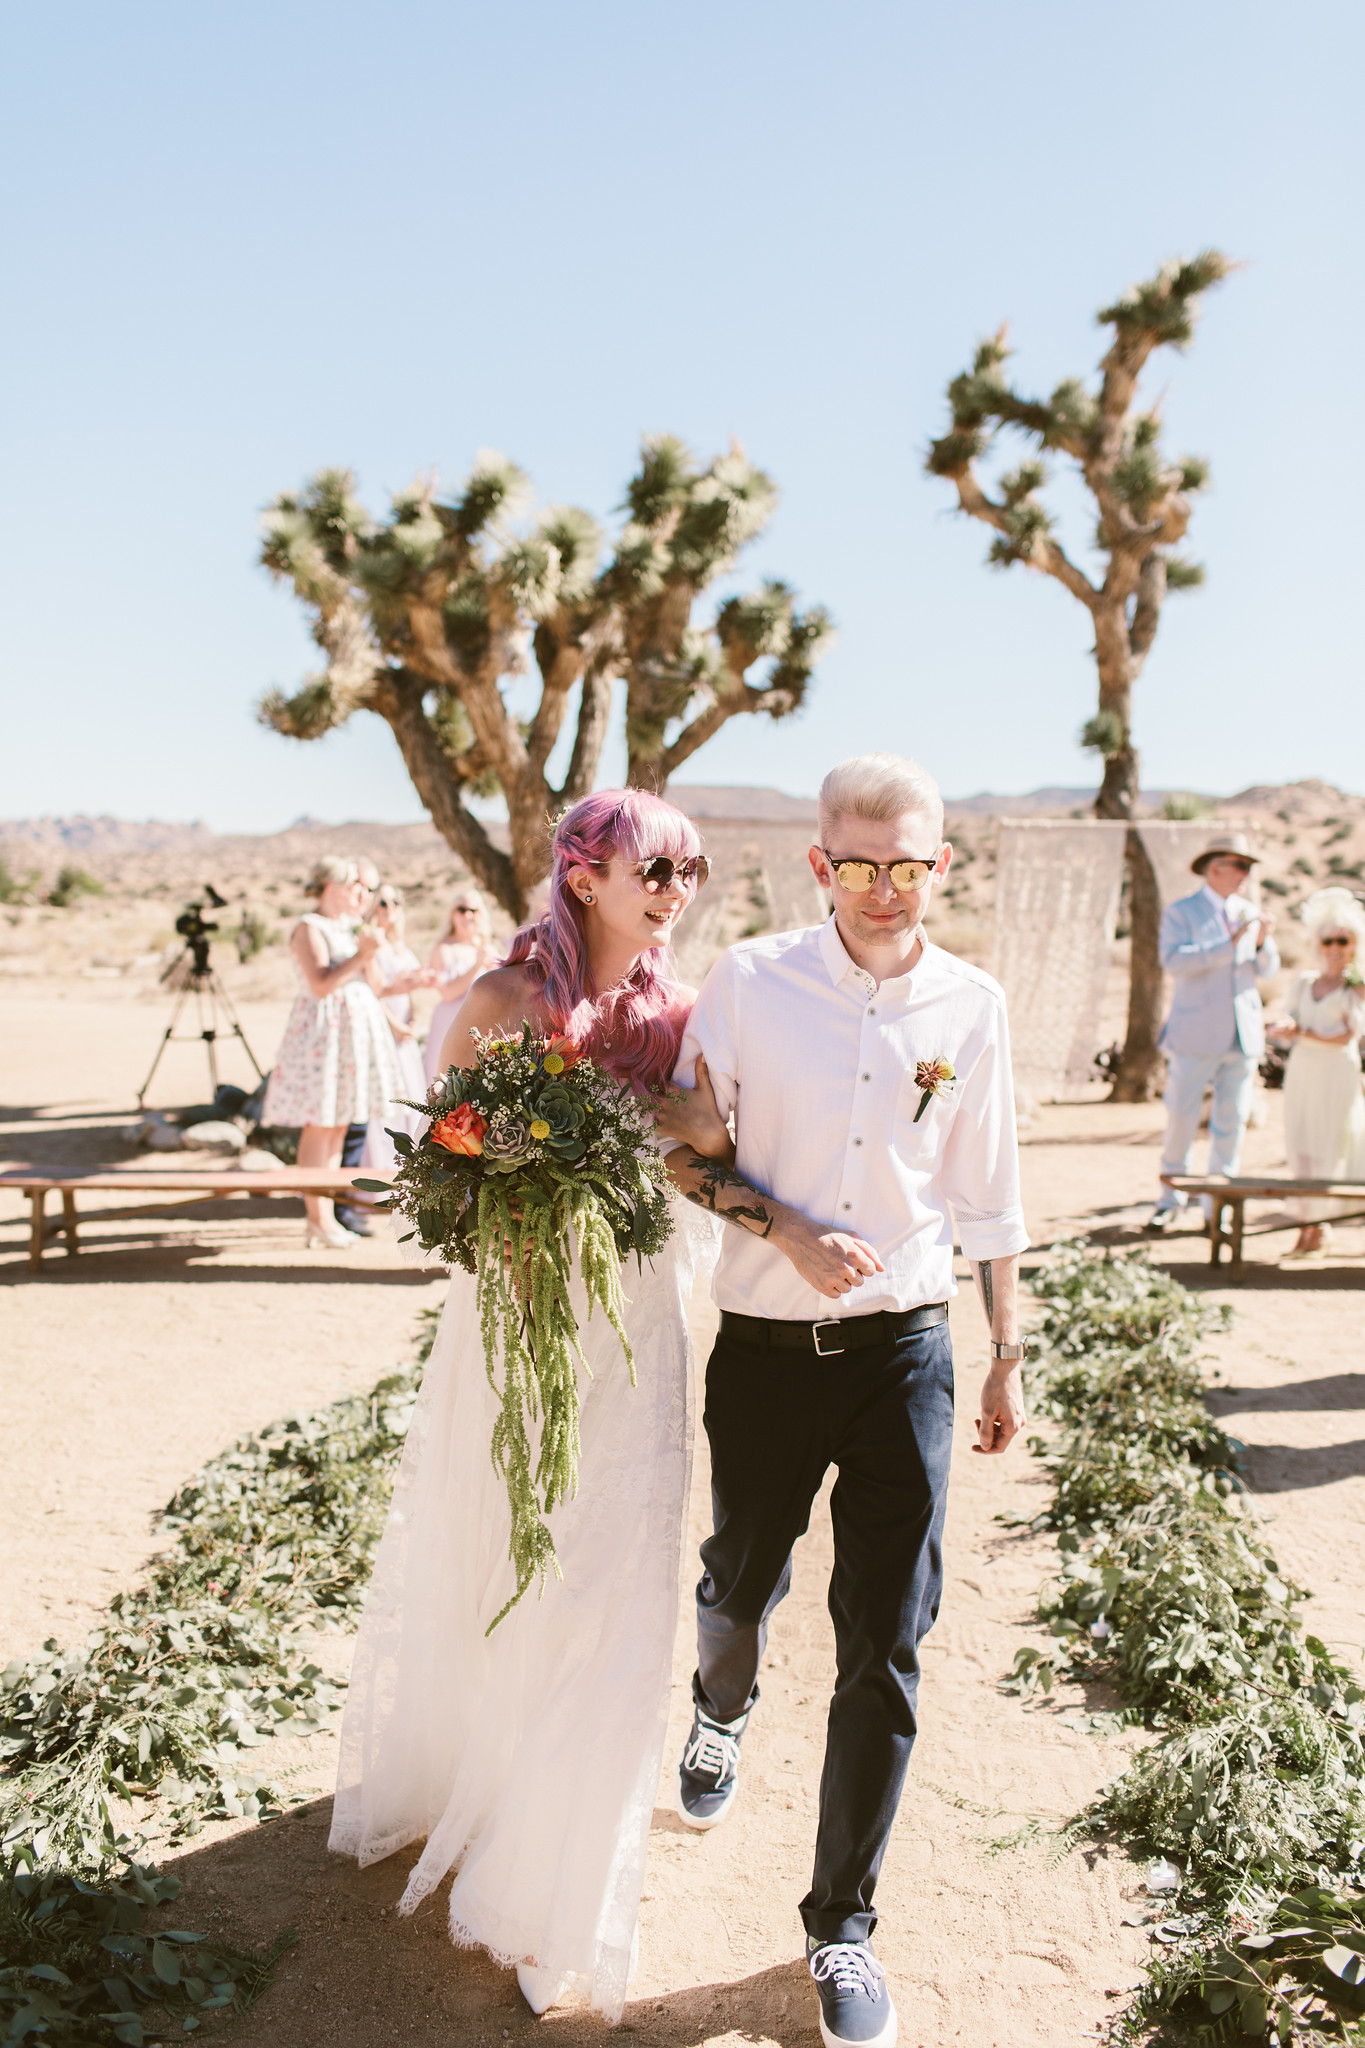 zoe-london-wedding-joshua-tree-66.jpg